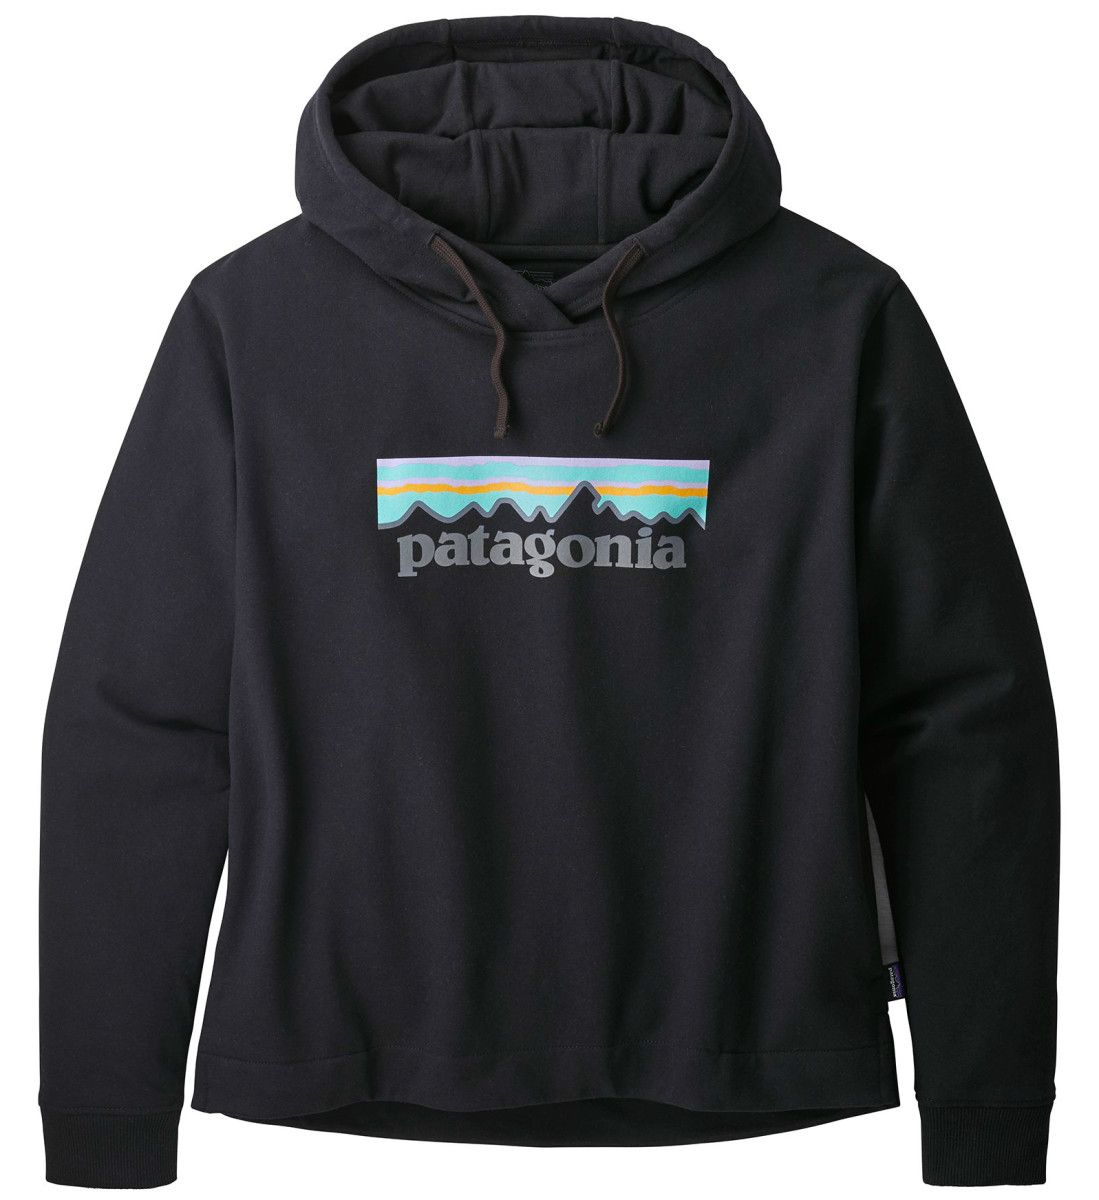 Patagonia Logo - Maura's New Favorite Patagonia Hoodie Is Made Using Exactly 14.9 ...